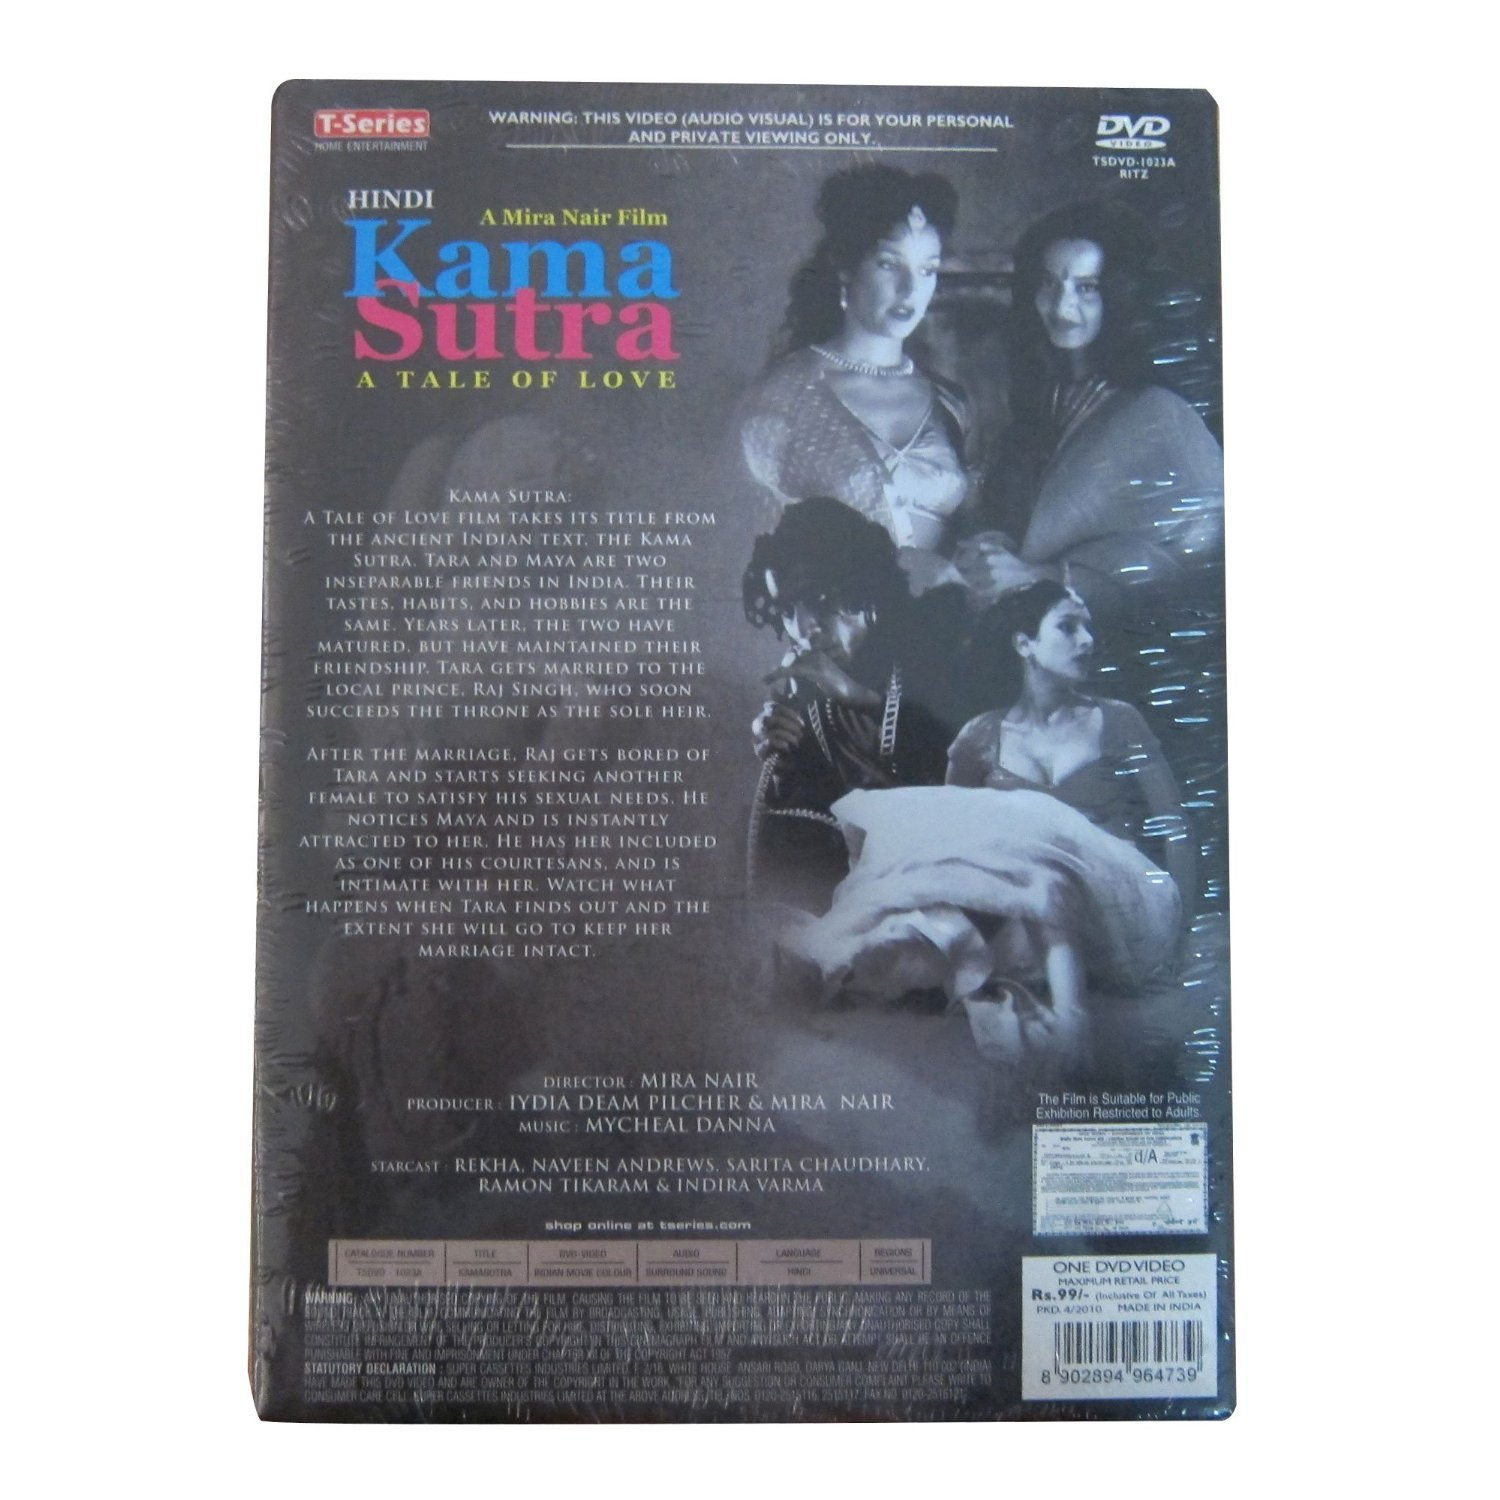 Love tale of sutra: a Kama Sutra: